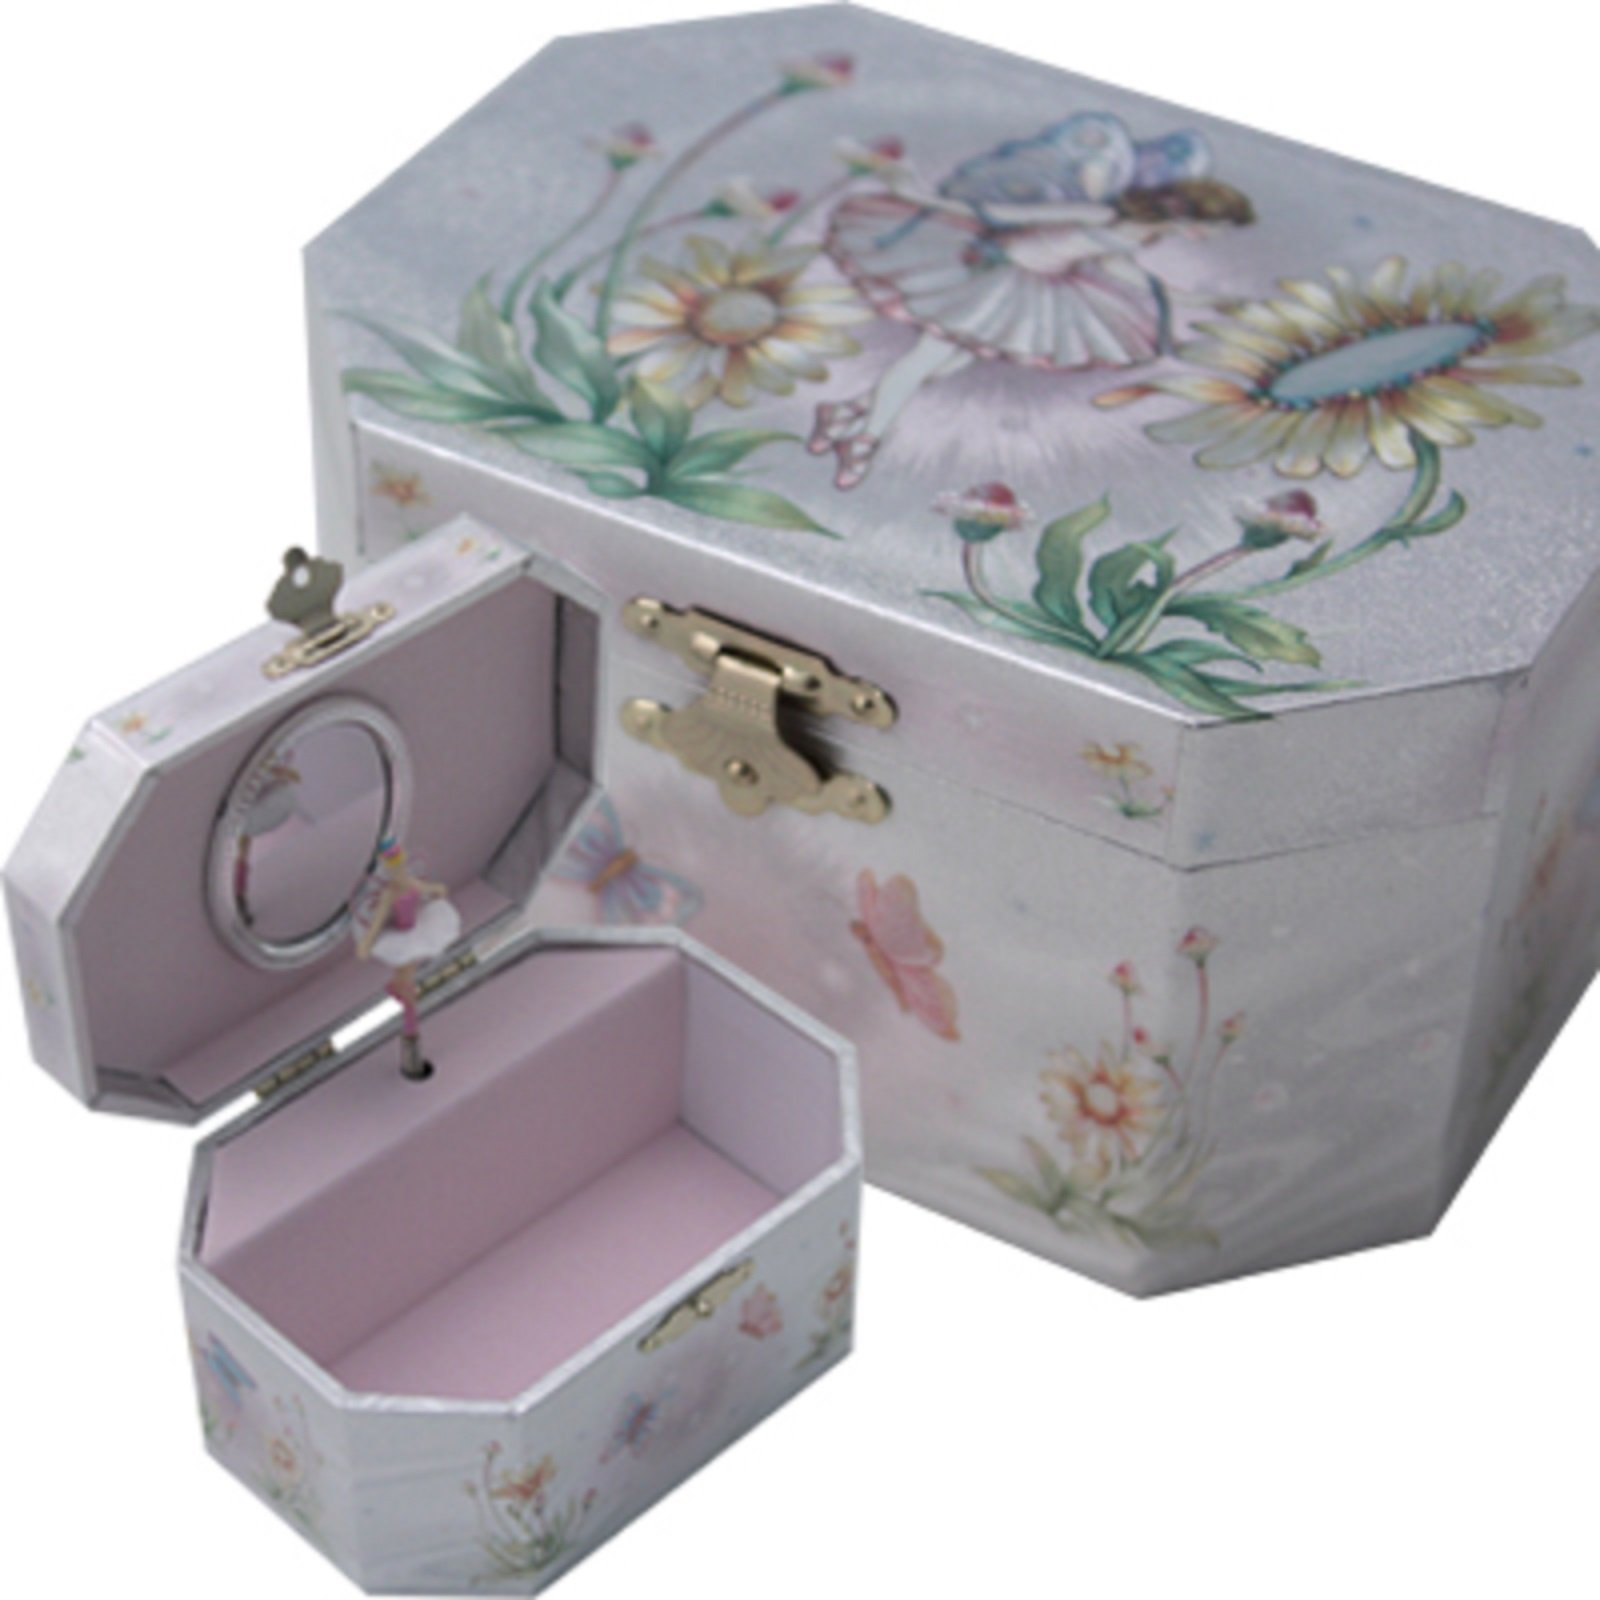 Fairy Ballerina Jewelry Music Box-Wooden material (Wood) by GTP (Image #1)